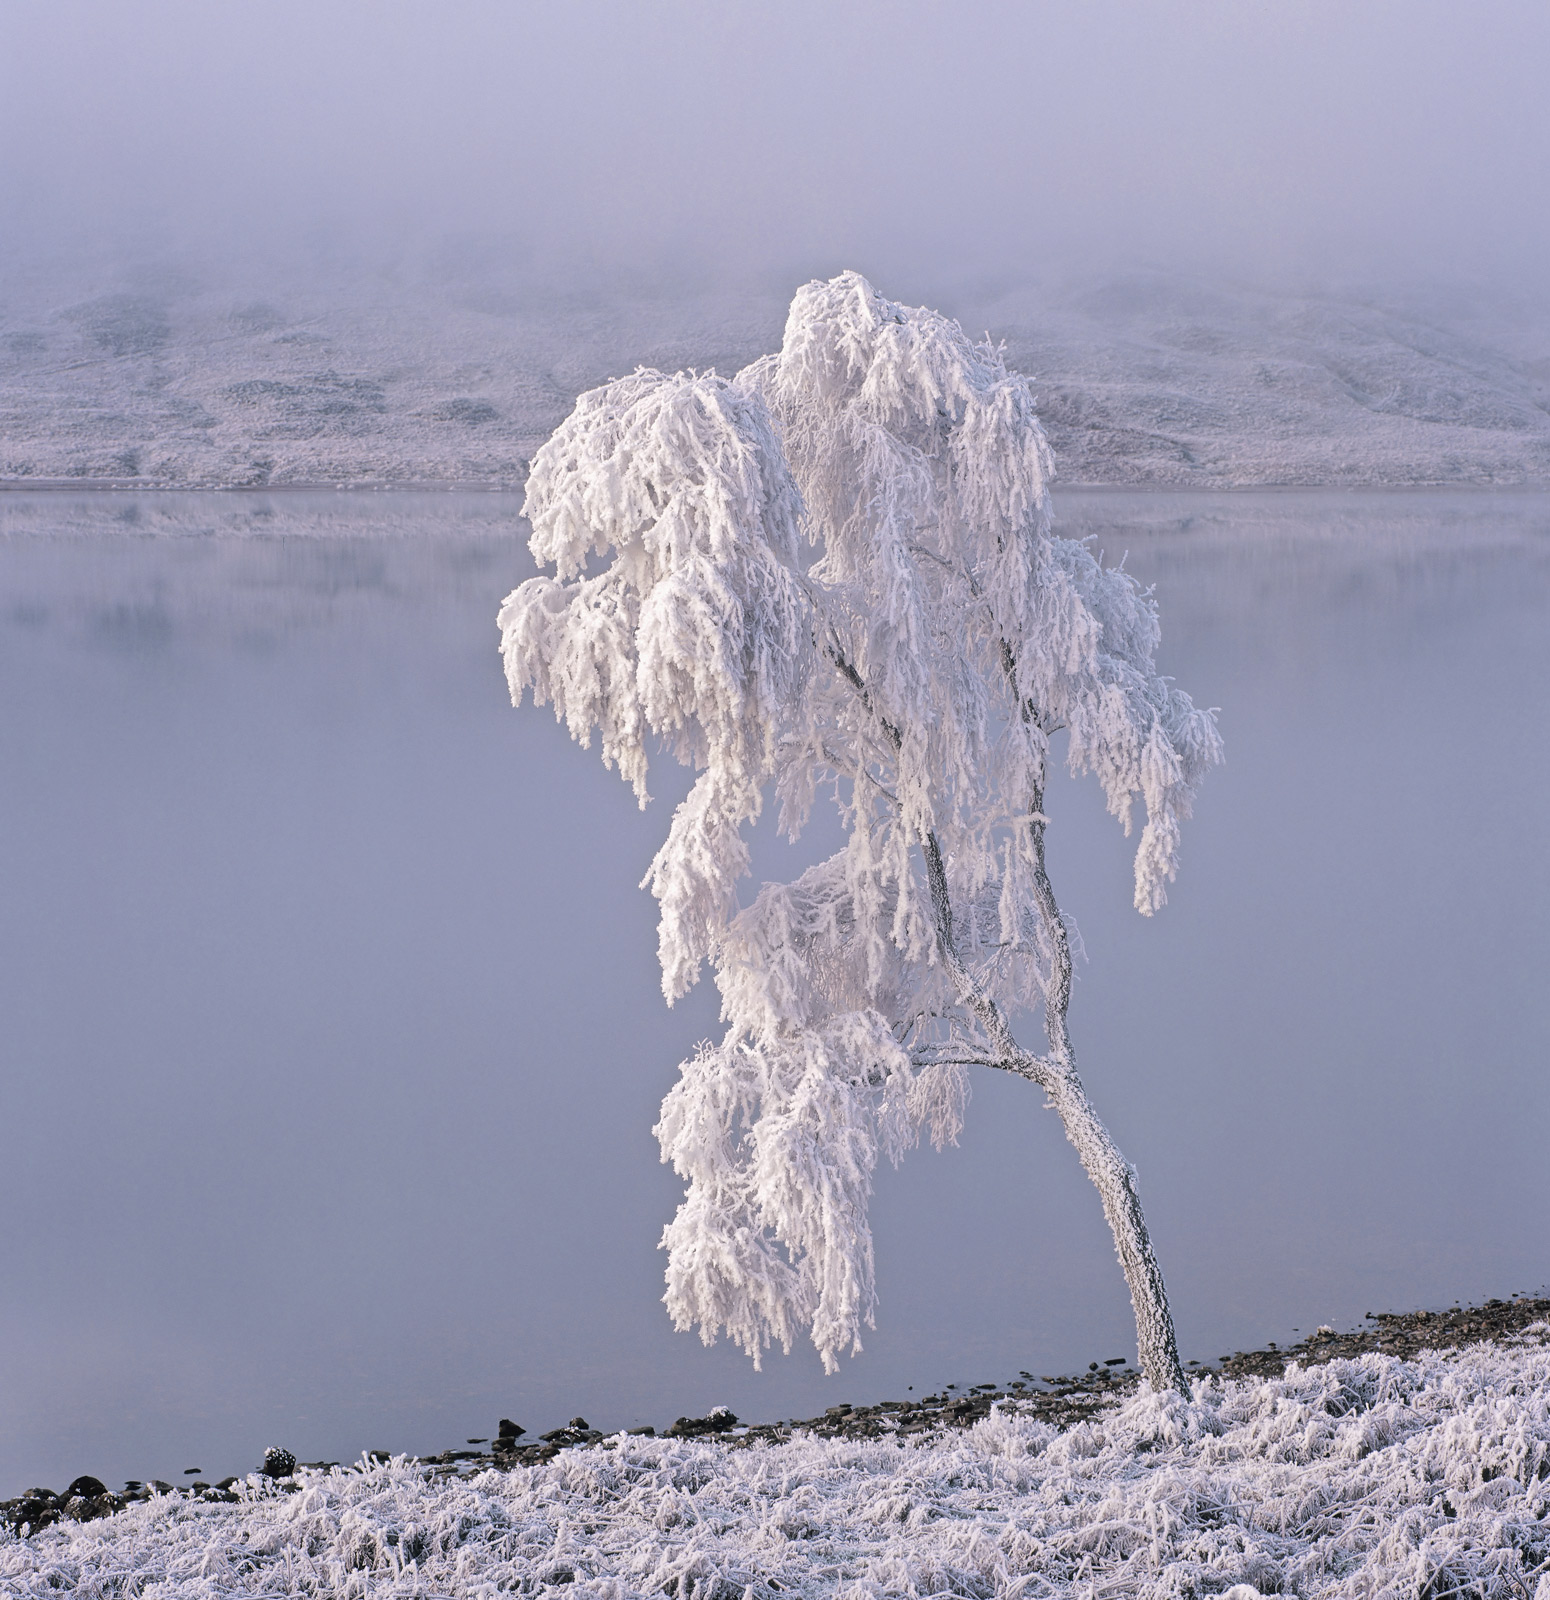 When I first saw this old birch tree looming out of a dense freezing mist around the shoreline of Loch A Chroisg, I saw the head...